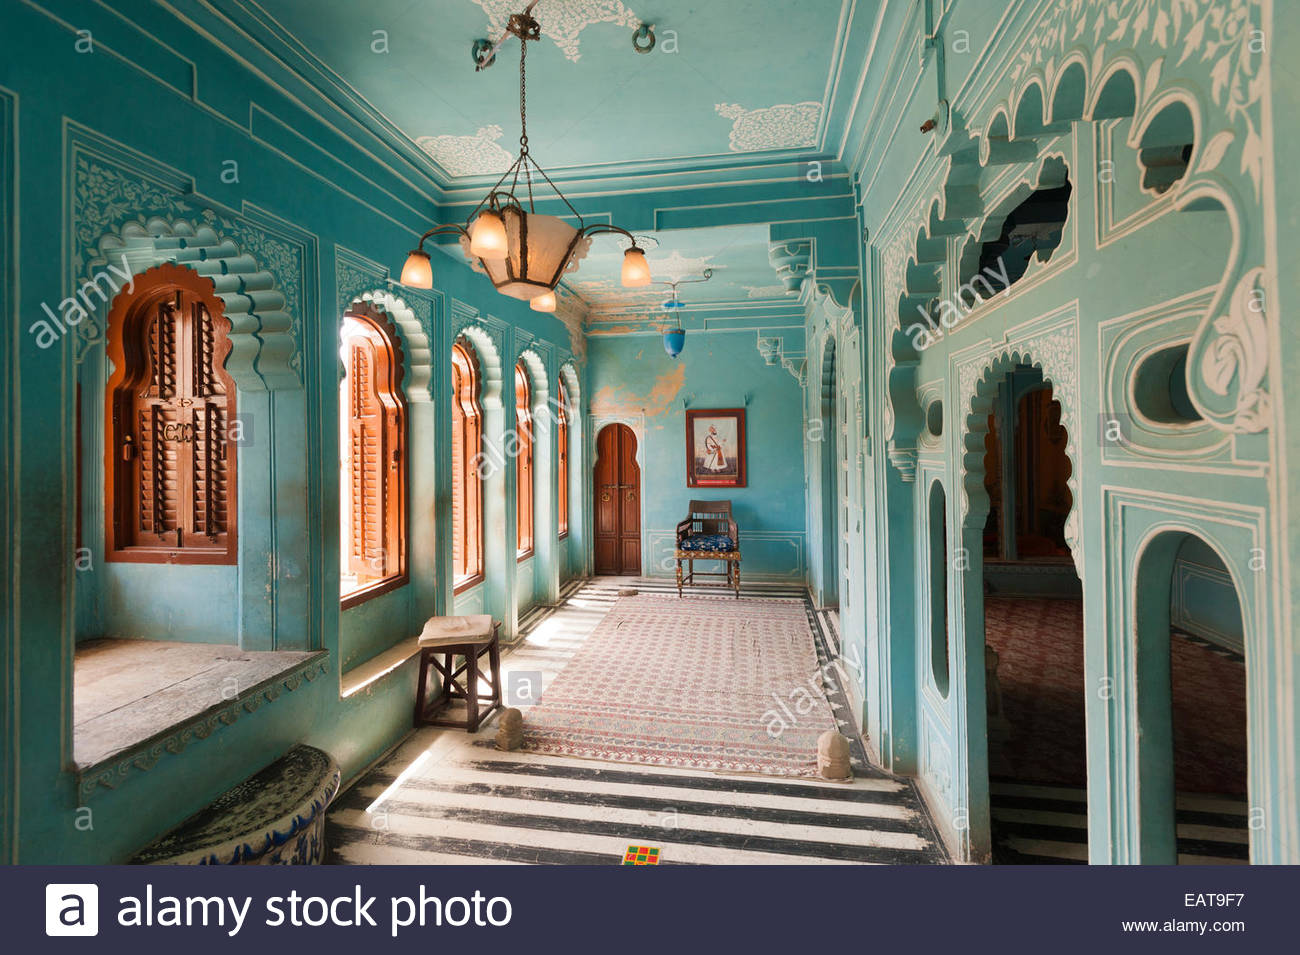 Room within Udaipur palace in India - Stock Image